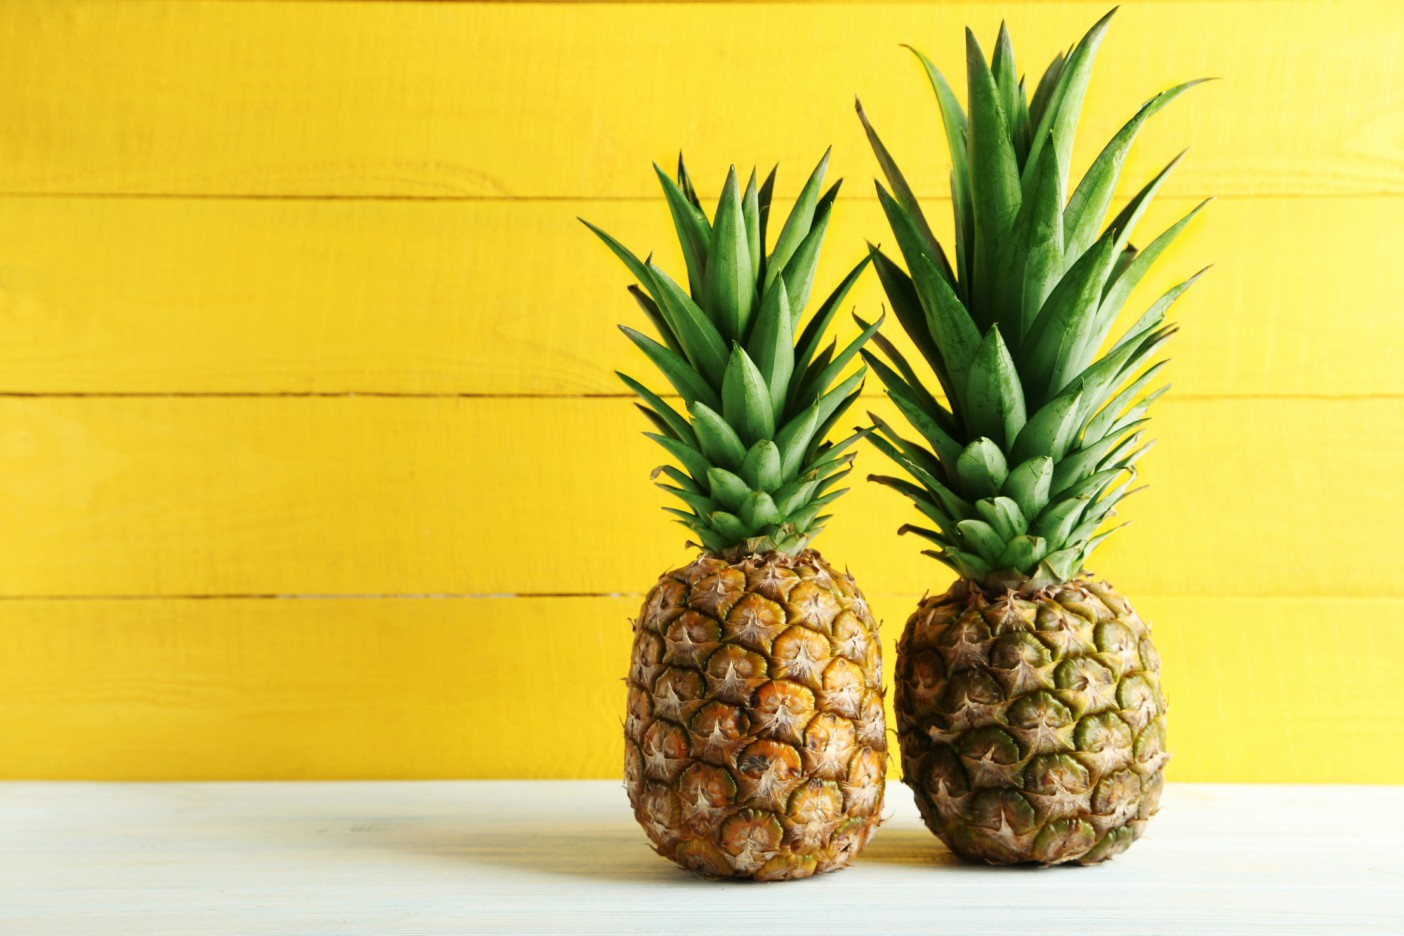 Bromelain: properties and benefits of the pineapple enzyme